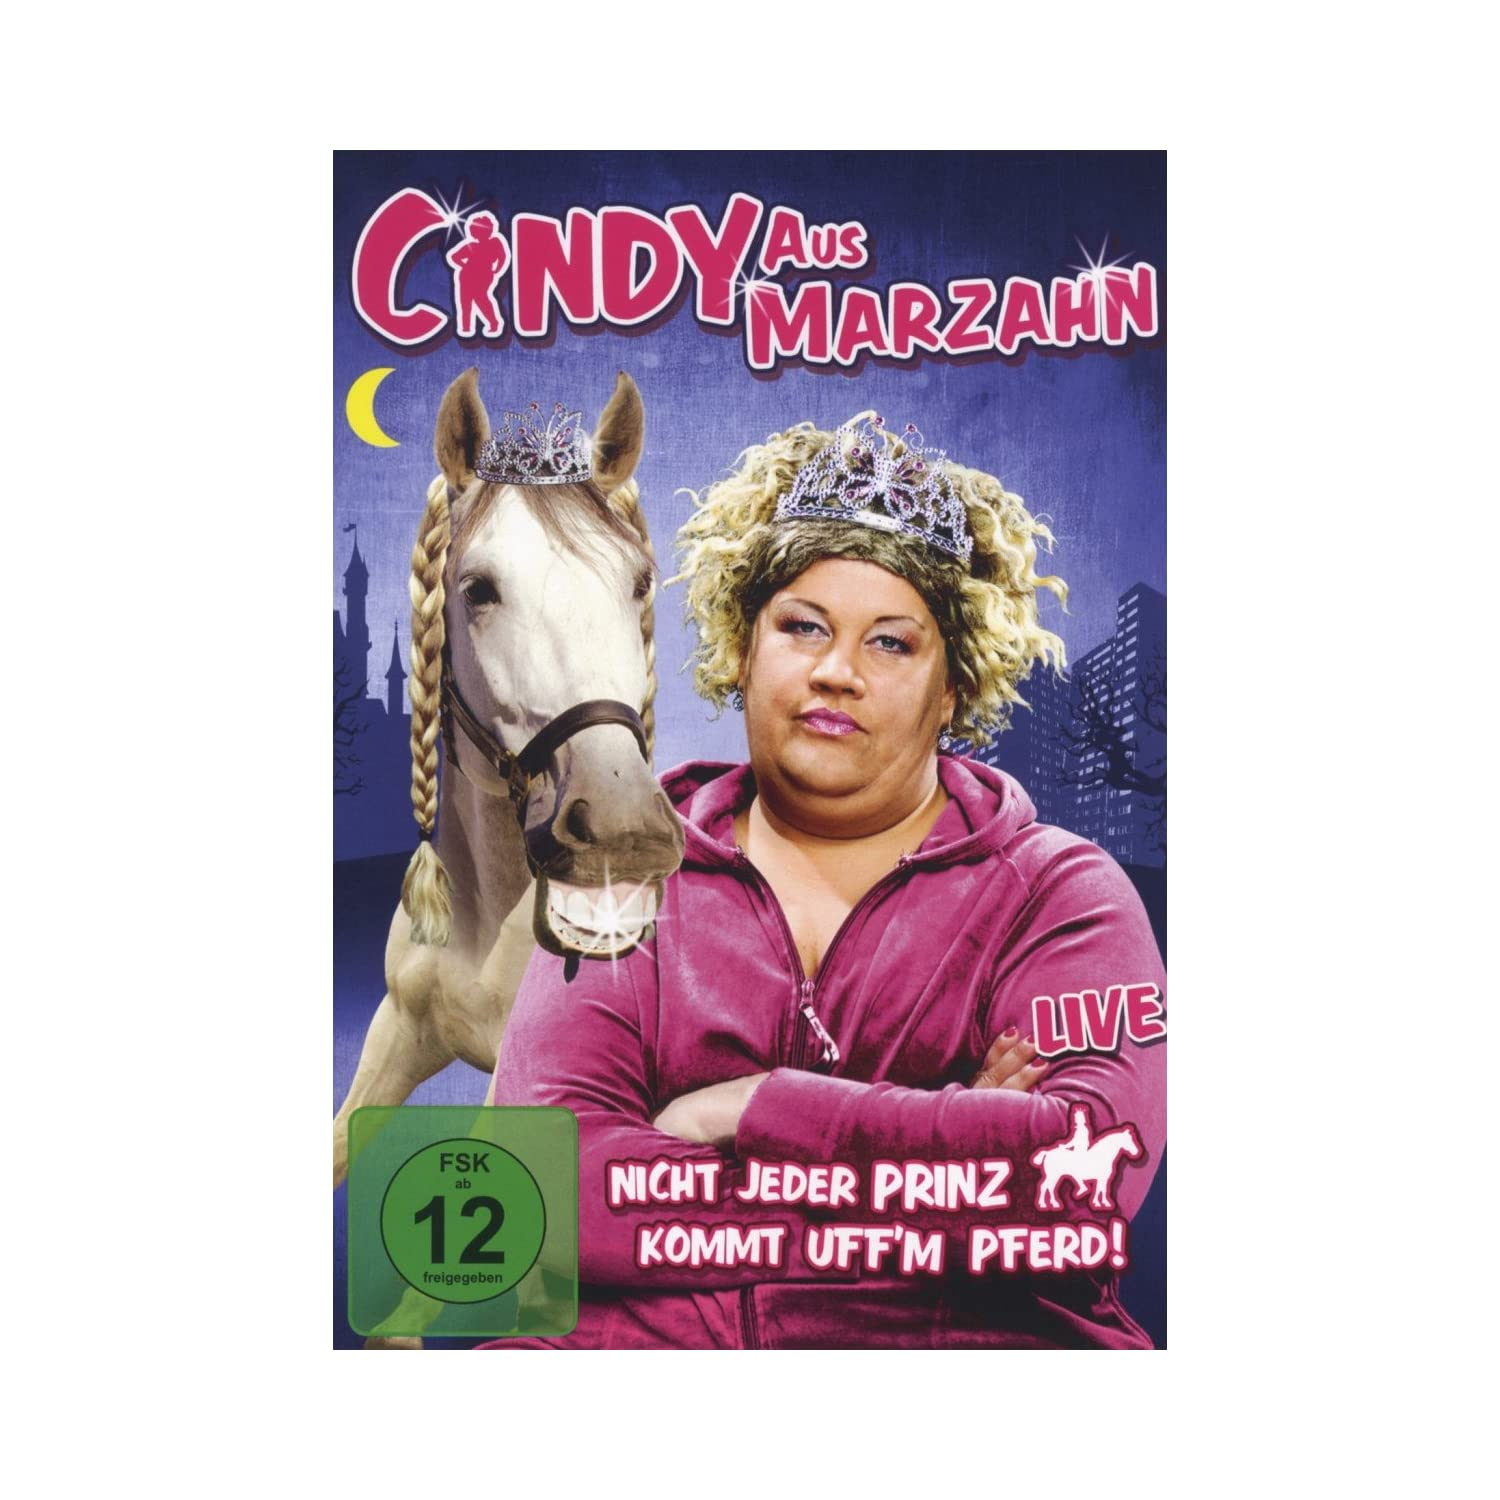 Cindy aus Marzahn - Nicht jeder Prinz kommt uffm Pferd